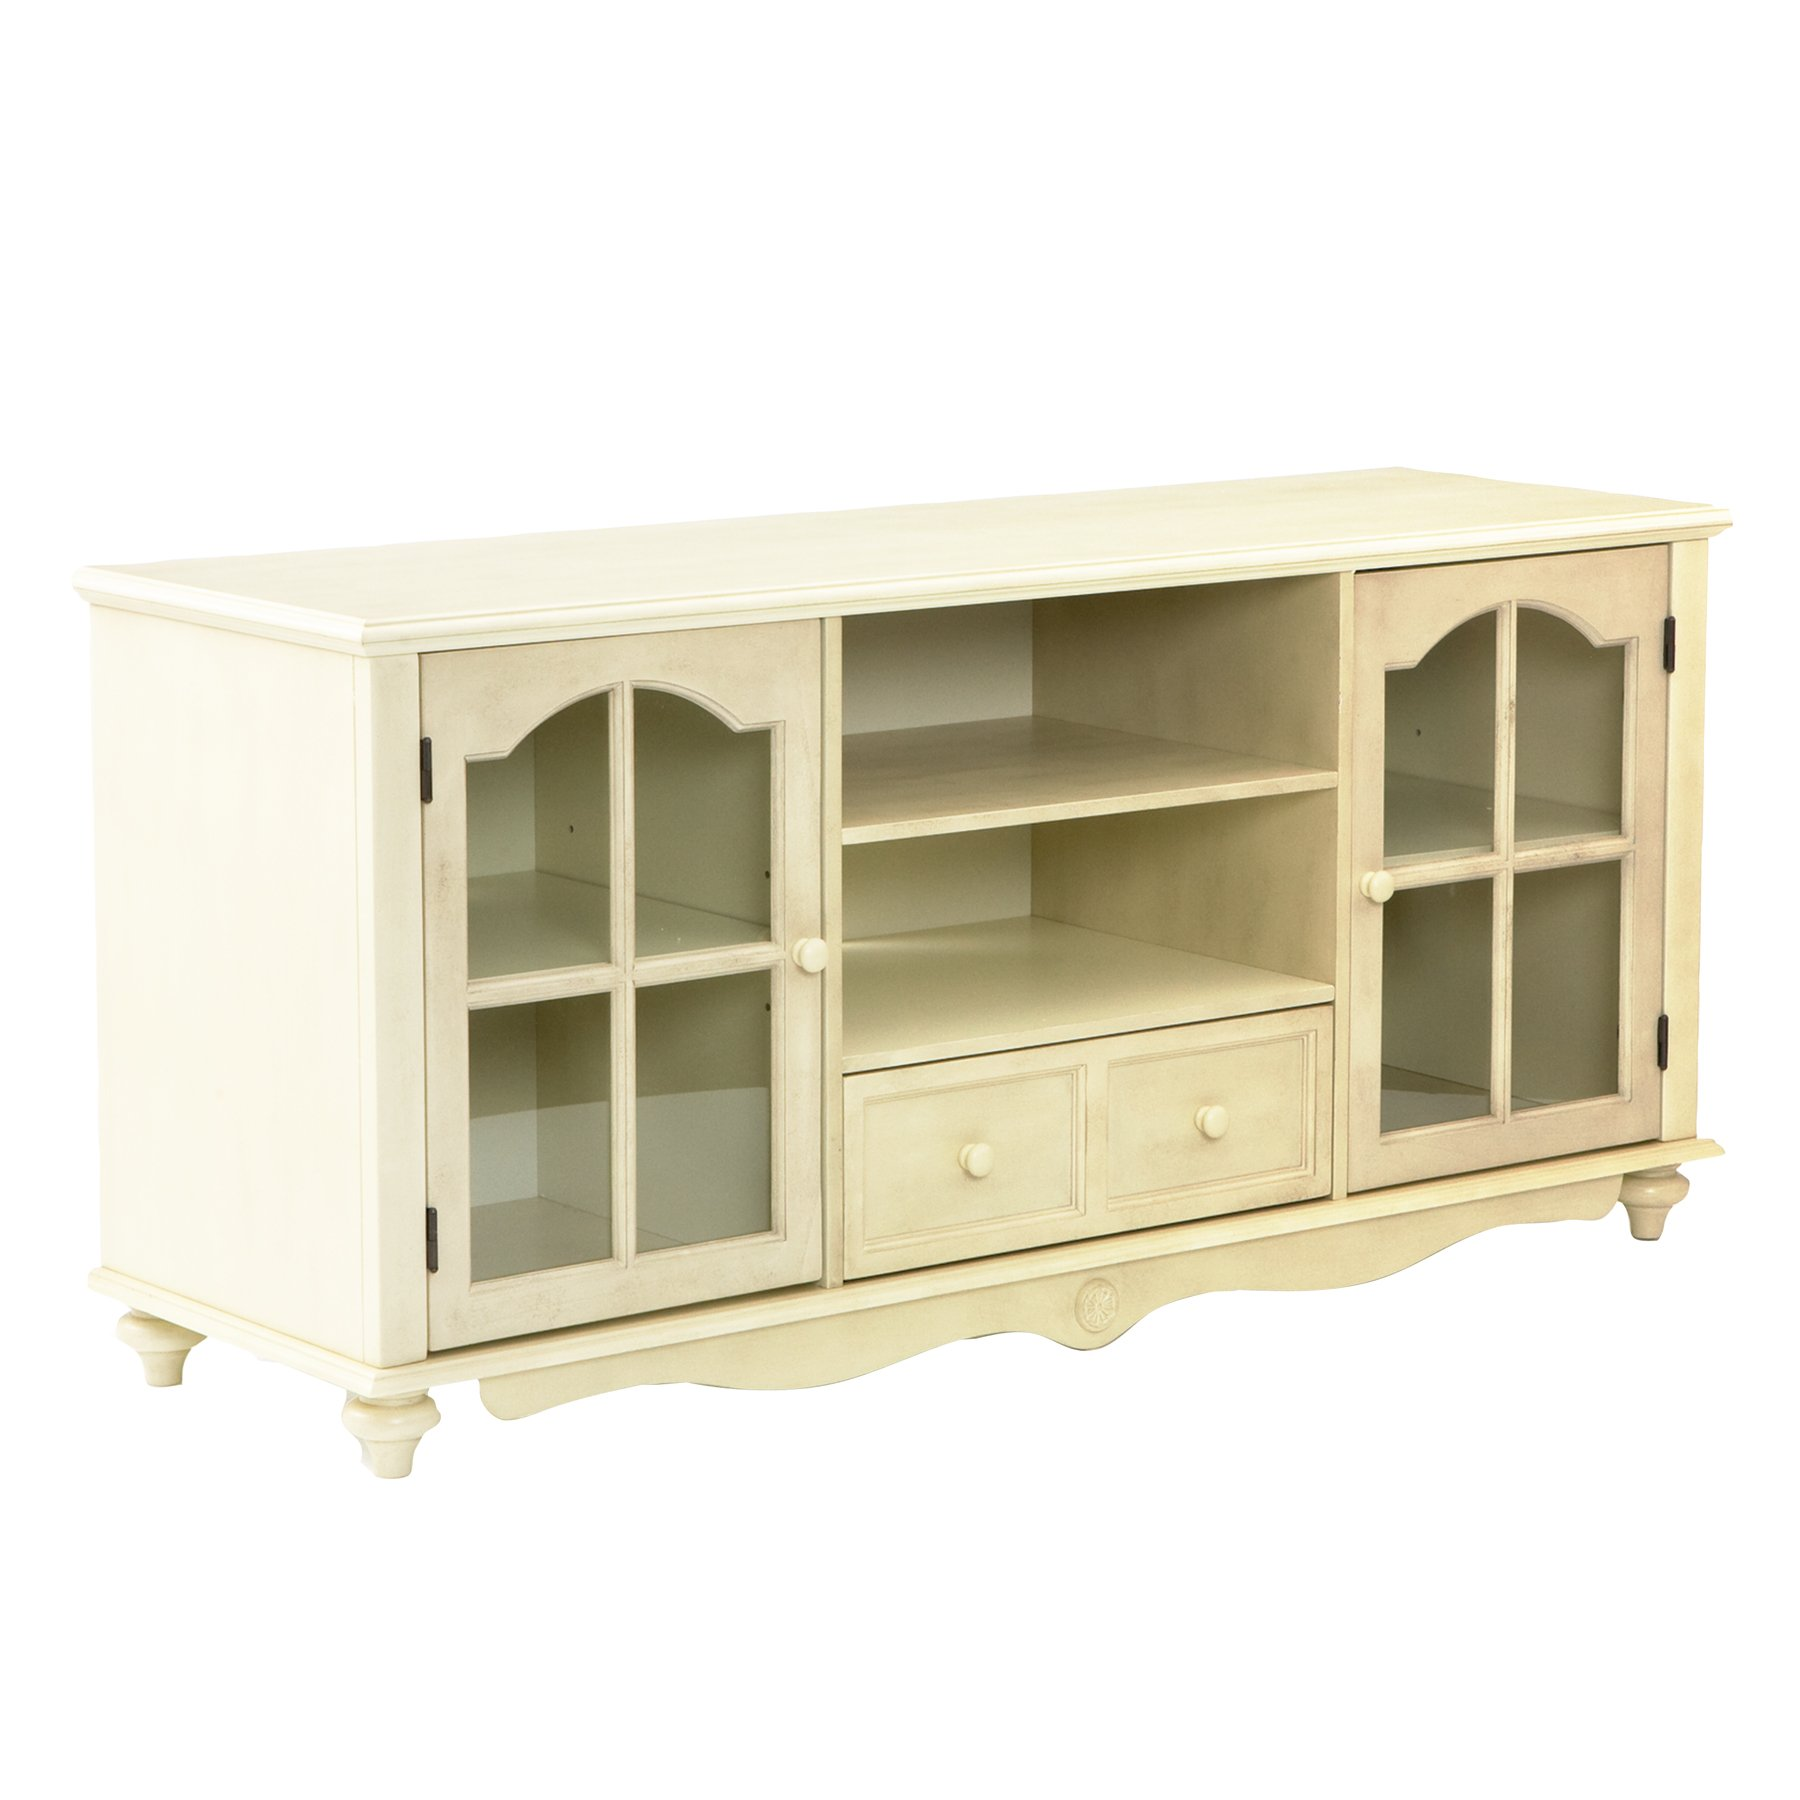 Covetry Large TV Console - Windowpane Cabinets w/ Shelves - Antique White Finish by Southern Enterprises